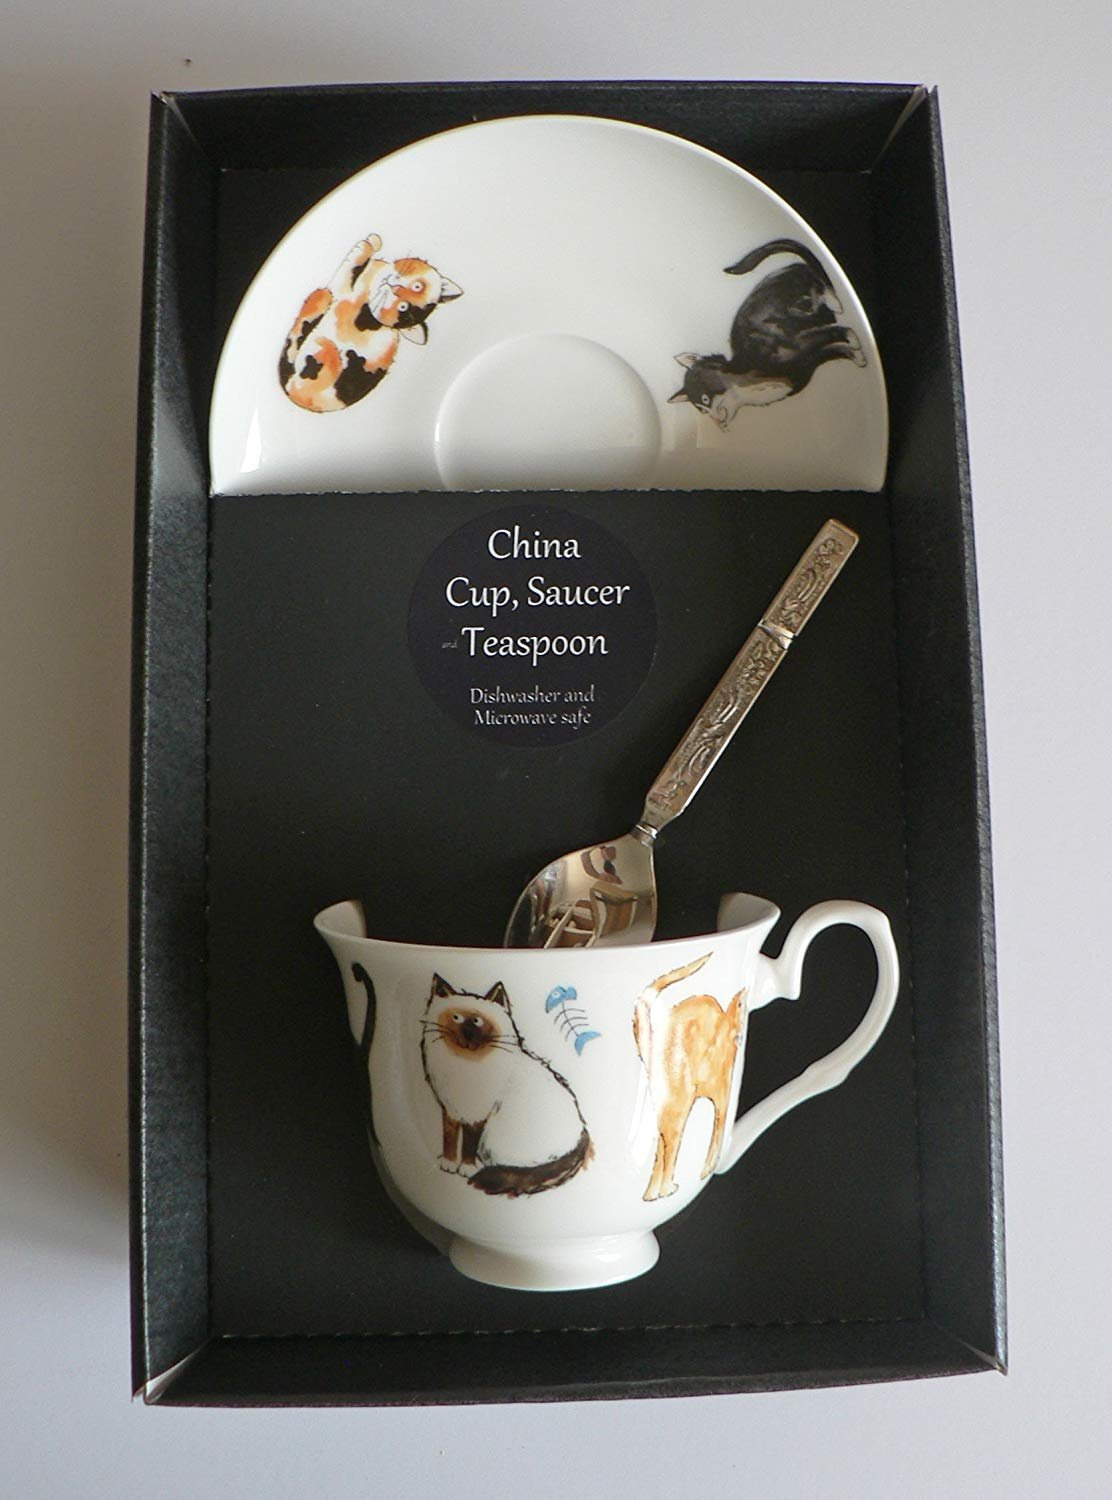 Cats cup and saucer set,boxed bone china gift boxed set wtih teaspoon crackinchina